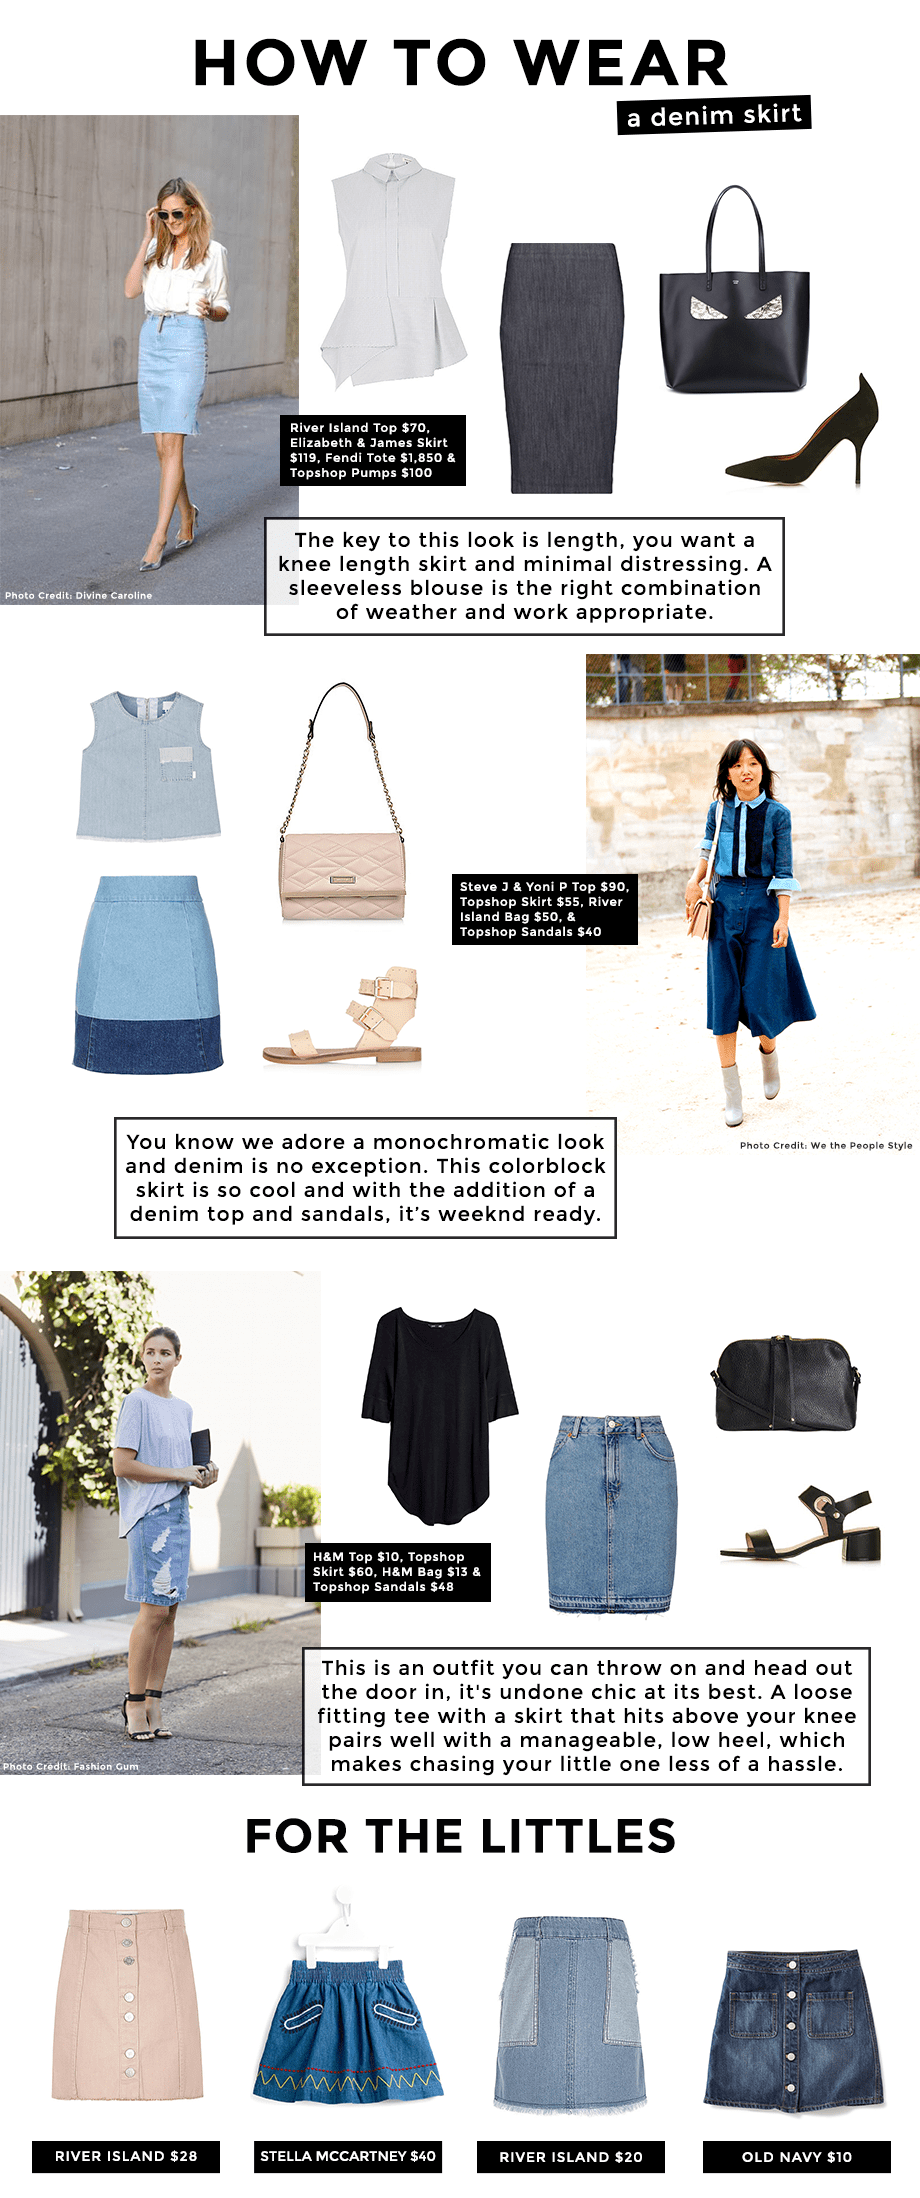 This is a post by Glitter and Bubbles that shows readers how to wear denim skirts.